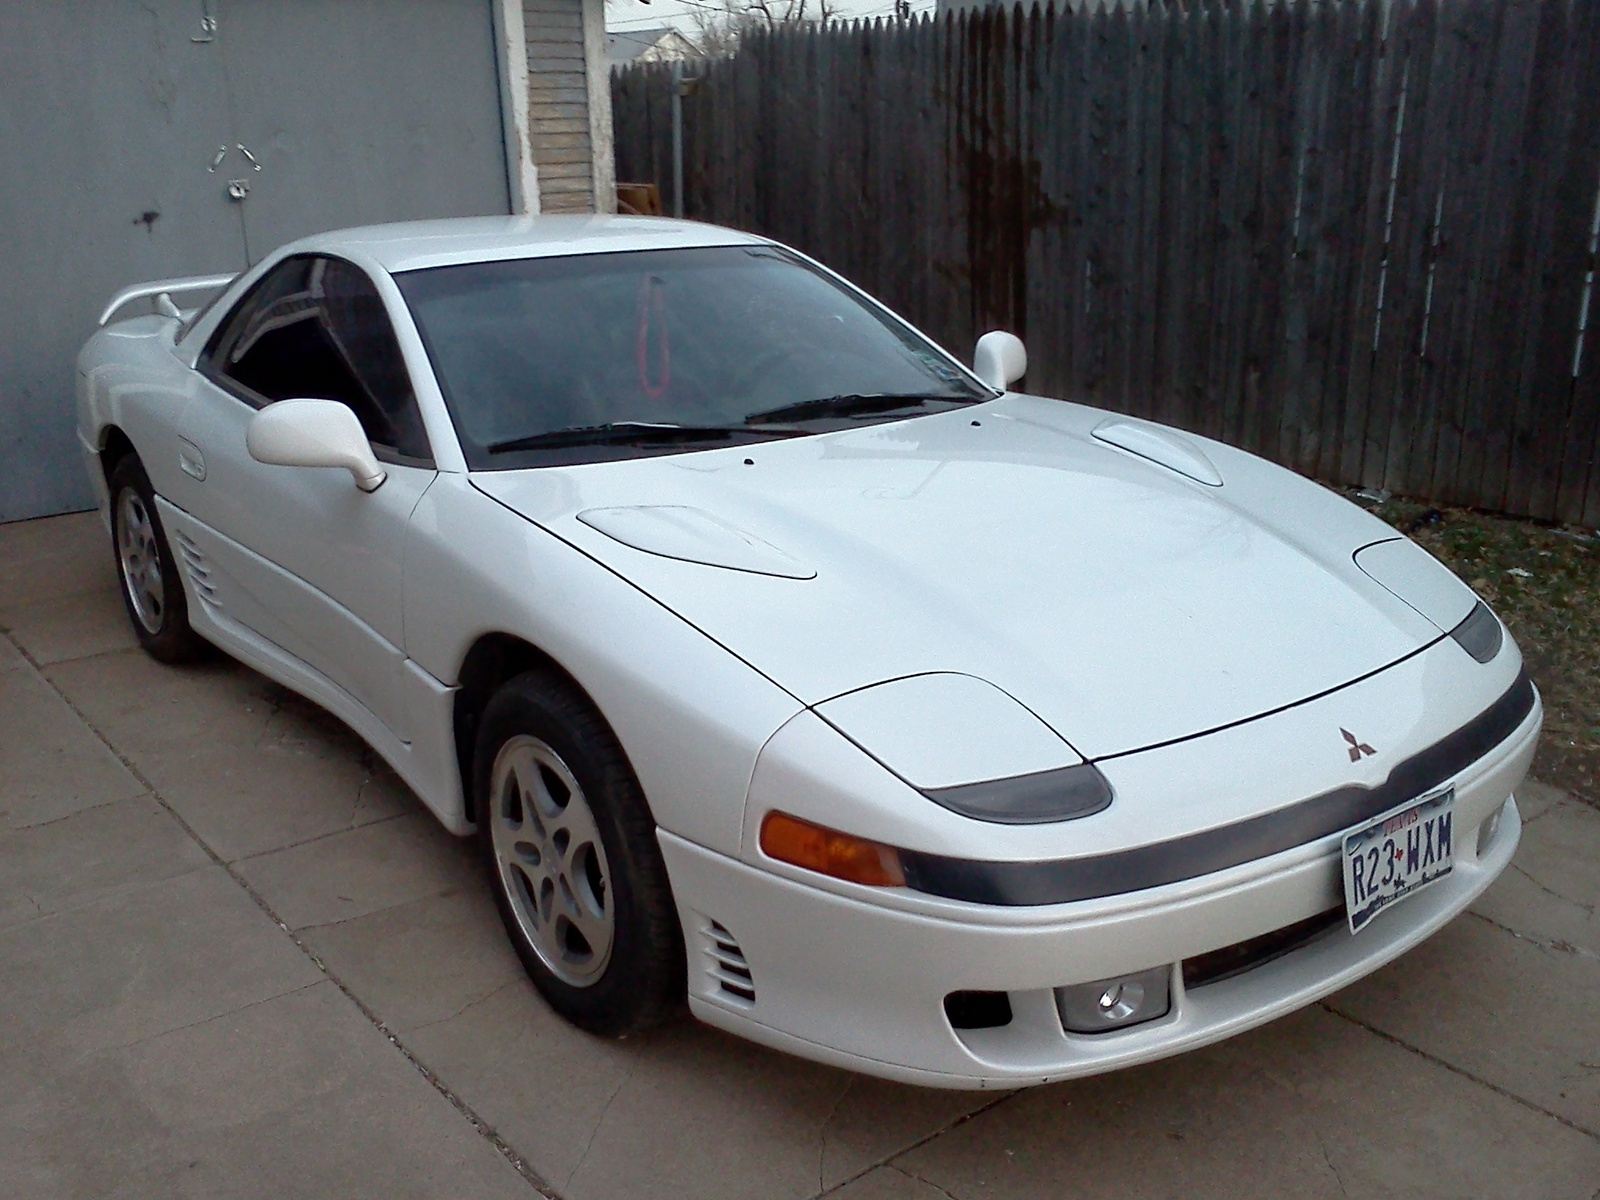 New Mitsubishi 3000gt >> 1991 Mitsubishi 3000gt Photos, Informations, Articles - BestCarMag.com